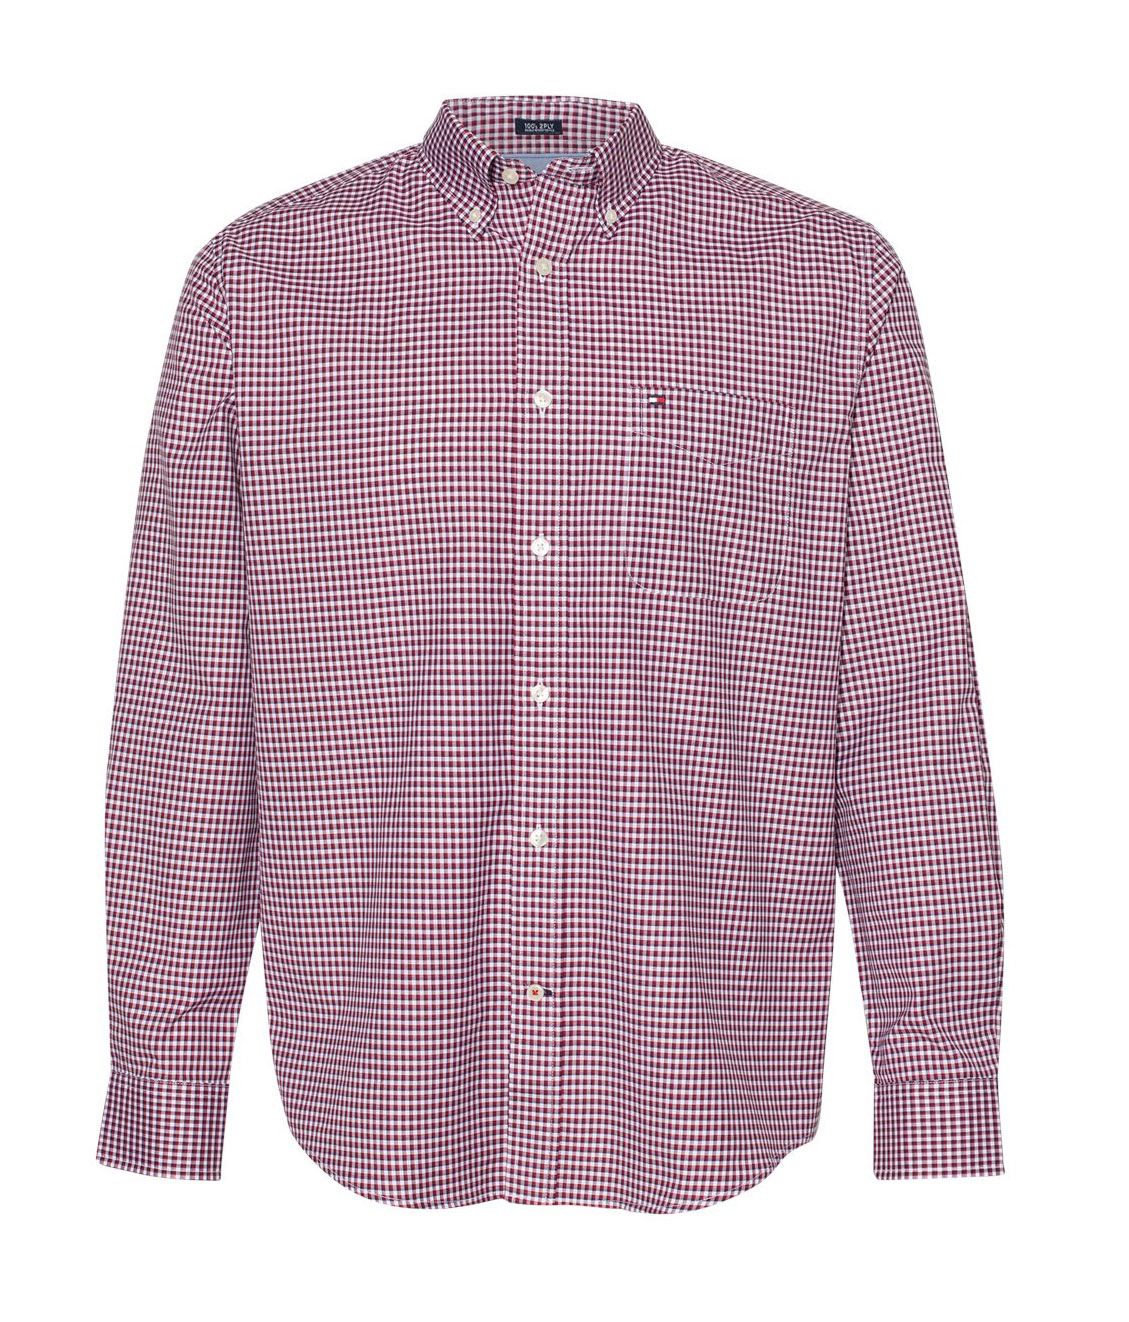 Tommy Hilfiger- Adult Gingham Shirt